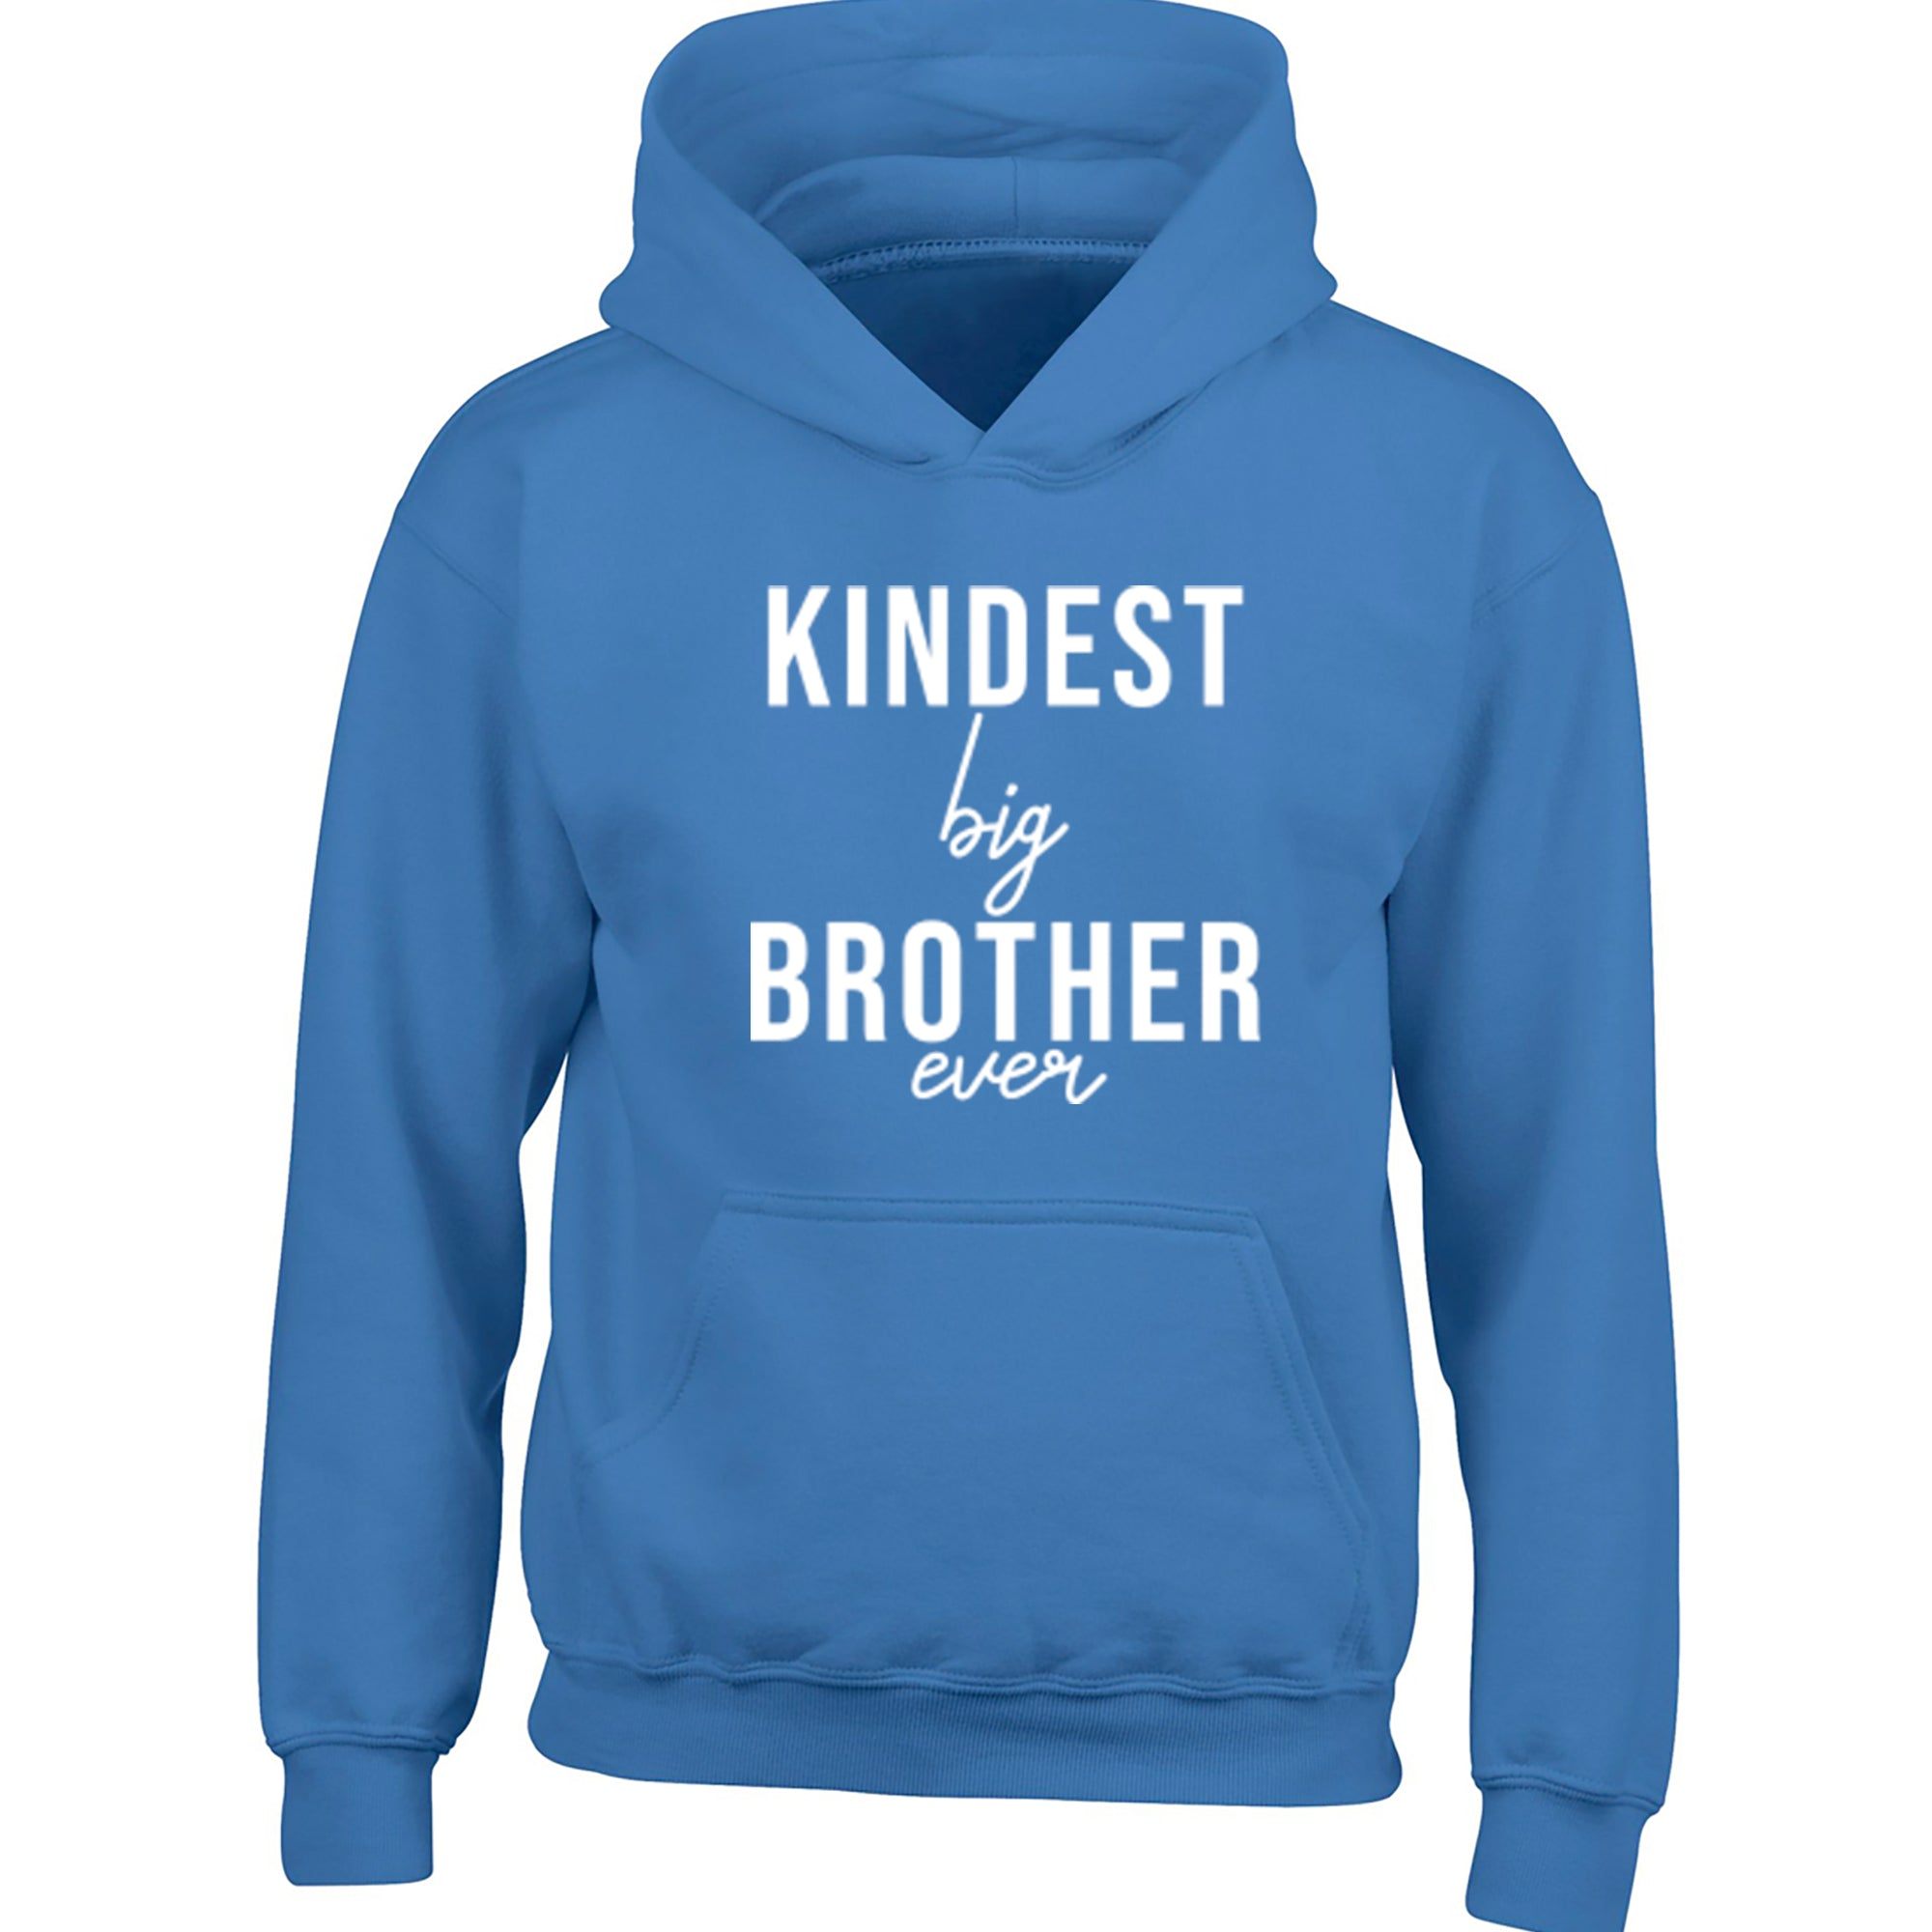 Kindest Big Brother Ever Childrens Ages 3/4-12/14 Unisex Hoodie S0525 - Illustrated Identity Ltd.